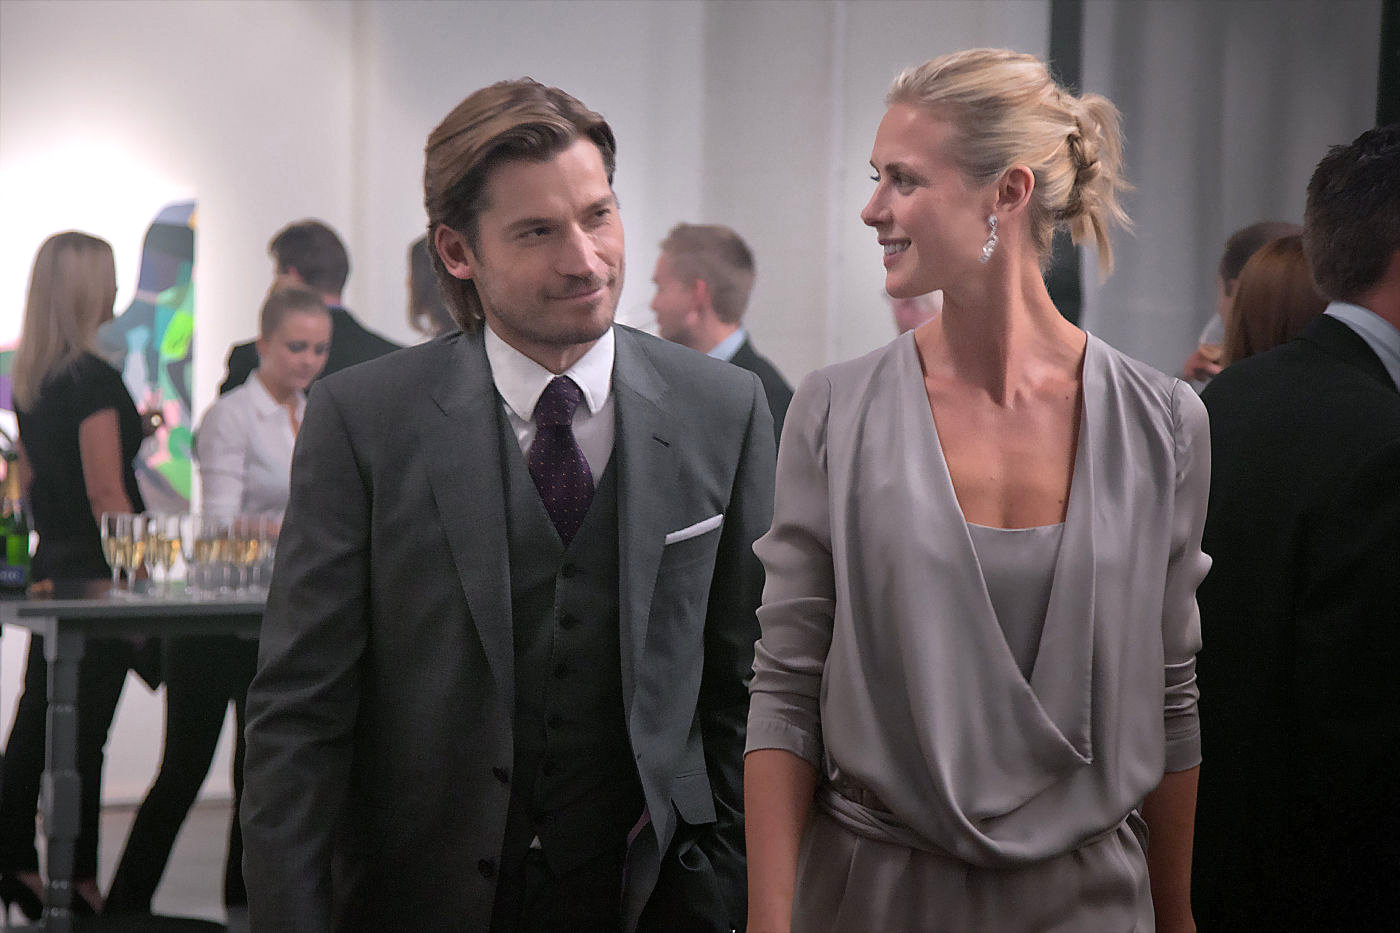 Clas Greve (Nikolaj Coster-Waldau) seems interested in Mrs. Brown (Synnøve Macody Lund), and she doesn't seem to mind.